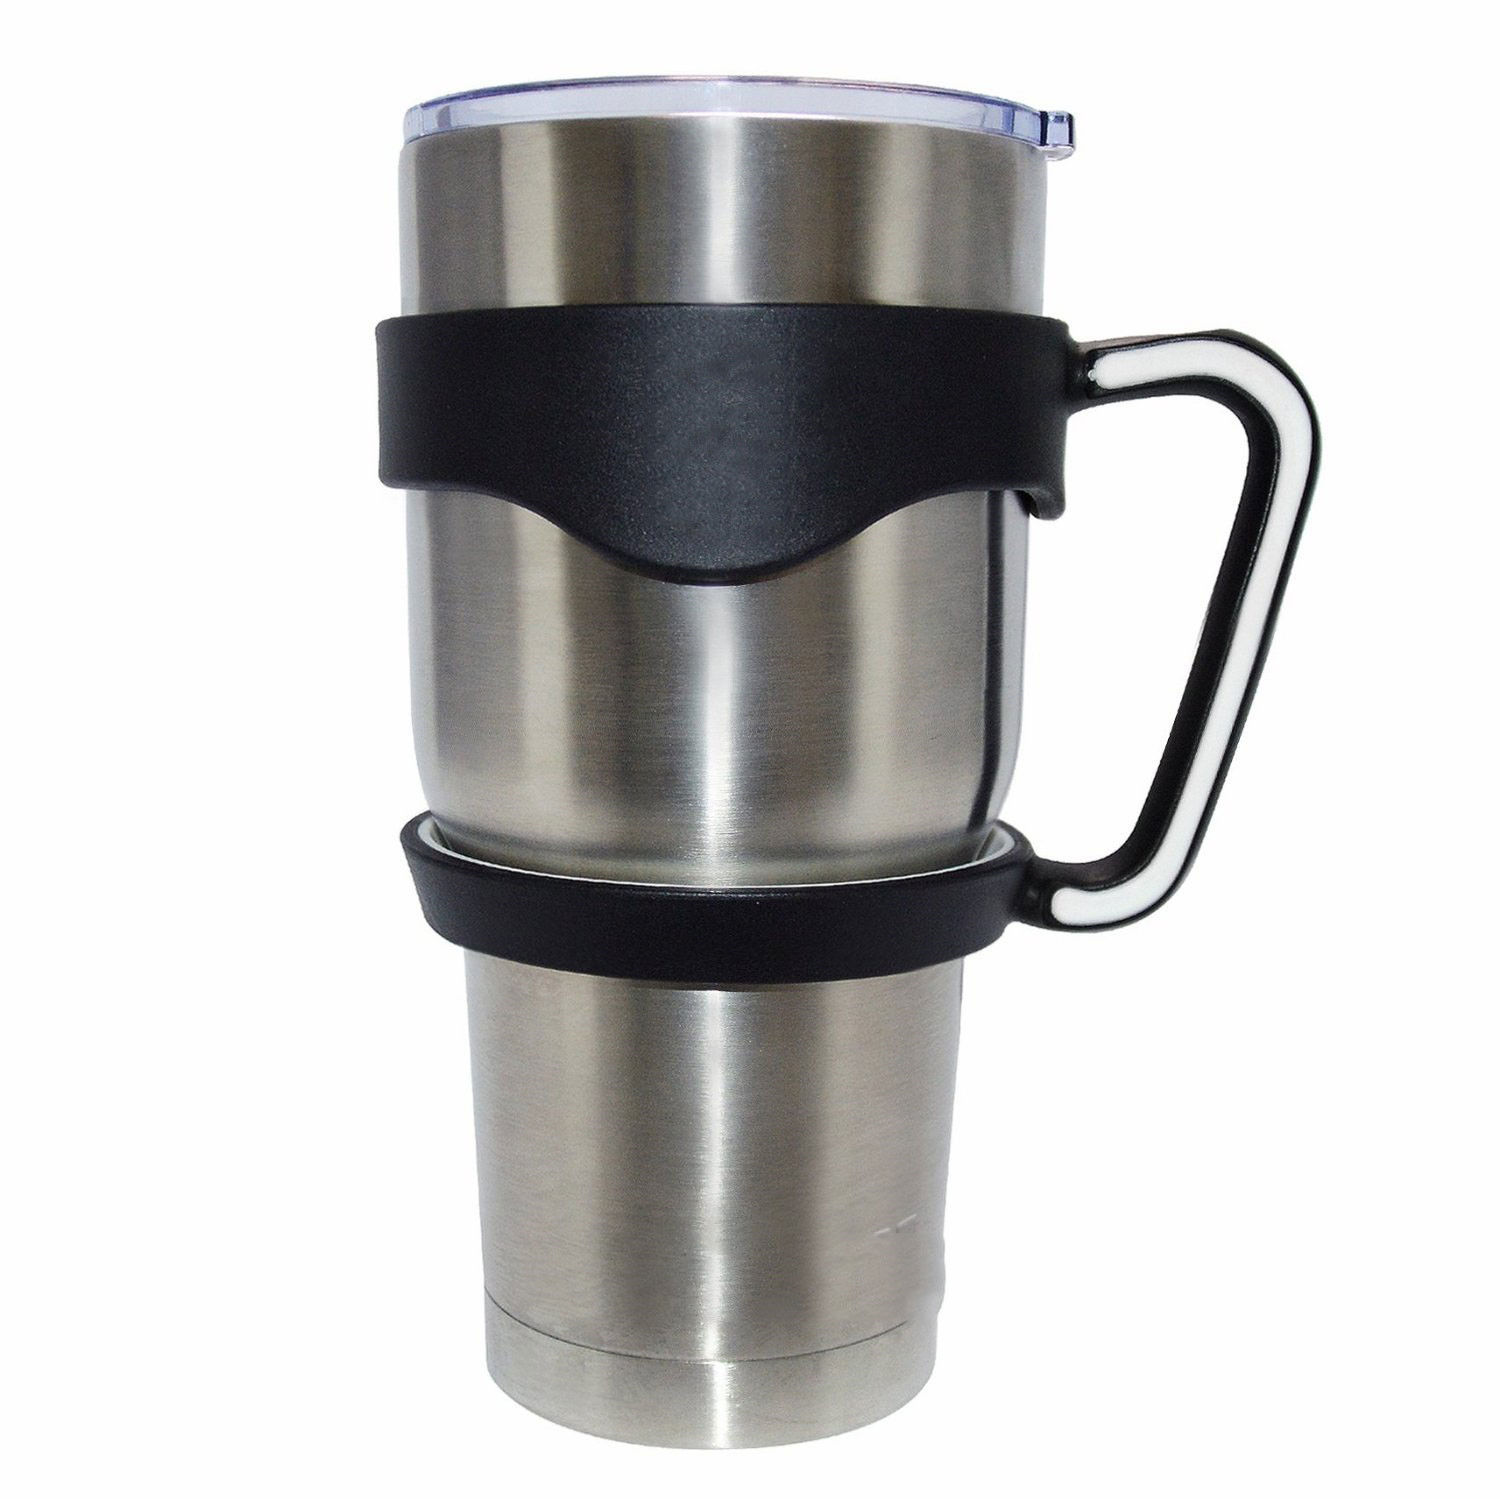 Handle-Holder-Tumbler-for-YETI-Rtic-Rambler-30-oz-Cup-Mug-Travel-Drinkware